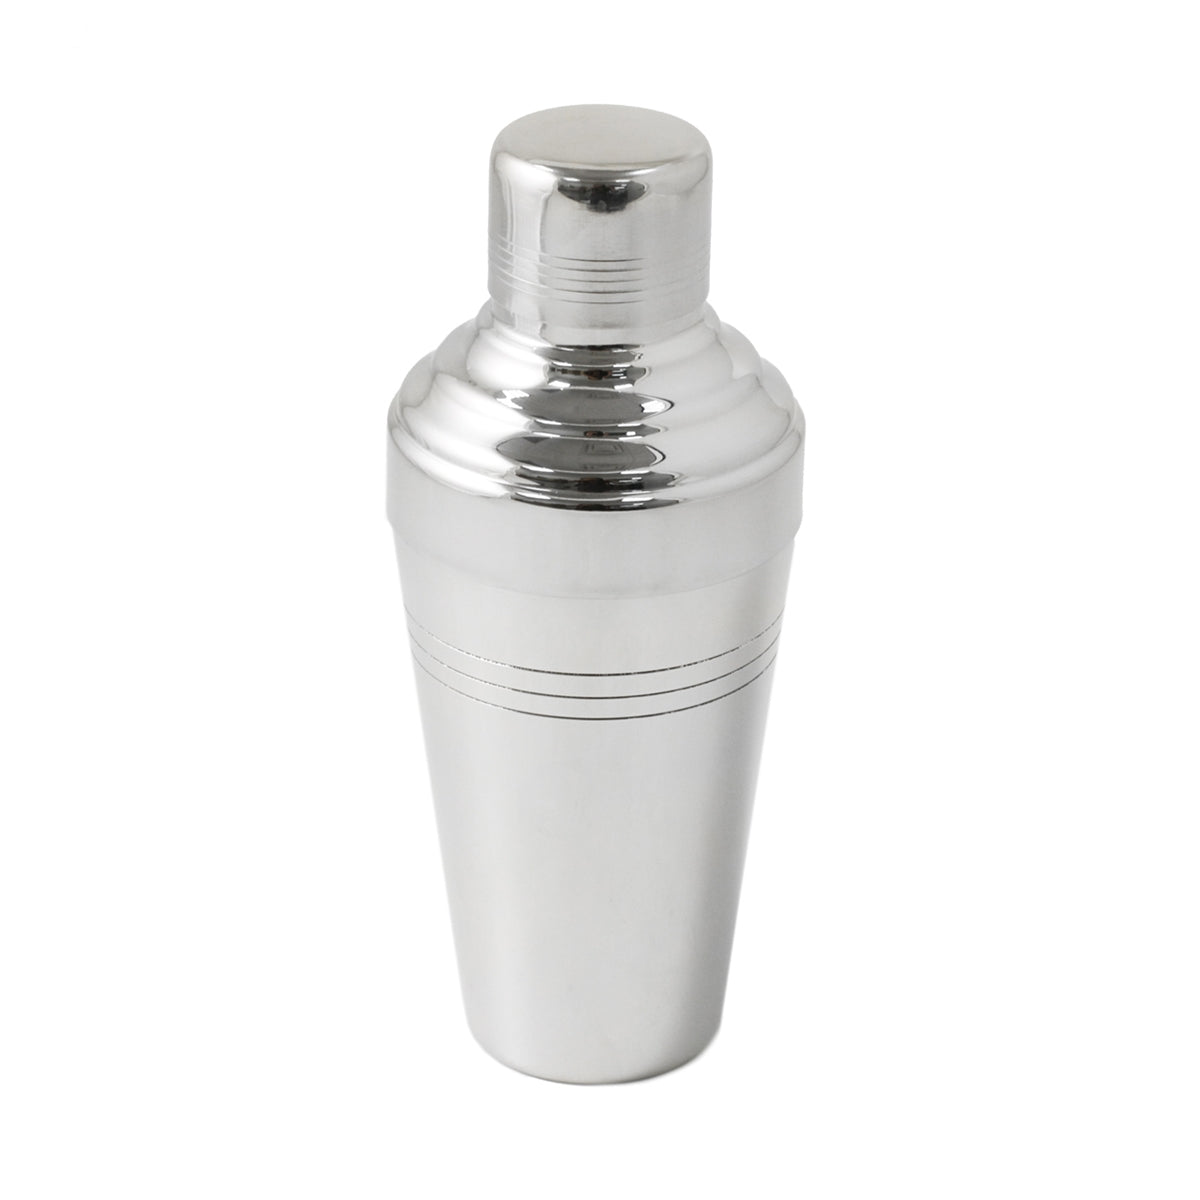 Yukiwa Stainless Steel Baron 3-Piece Cocktail Shaker 510ml (17.2 oz)